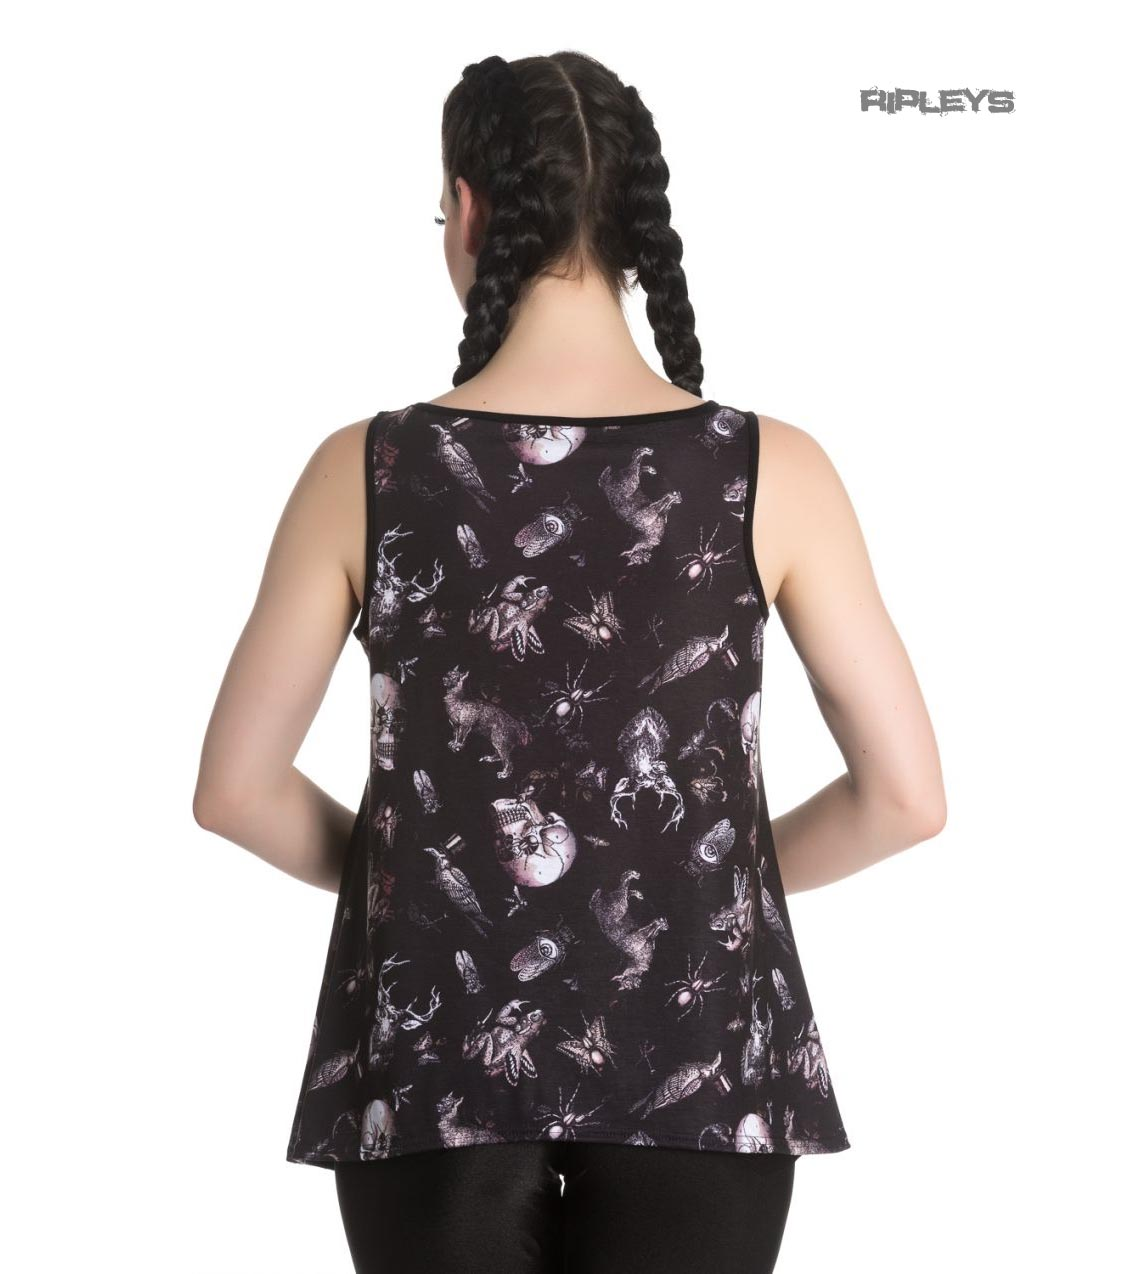 Hell-Bunny-Black-Vest-Cami-Top-Goth-Witch-DARWIN-Taxidermy-Skulls-All-Sizes thumbnail 4